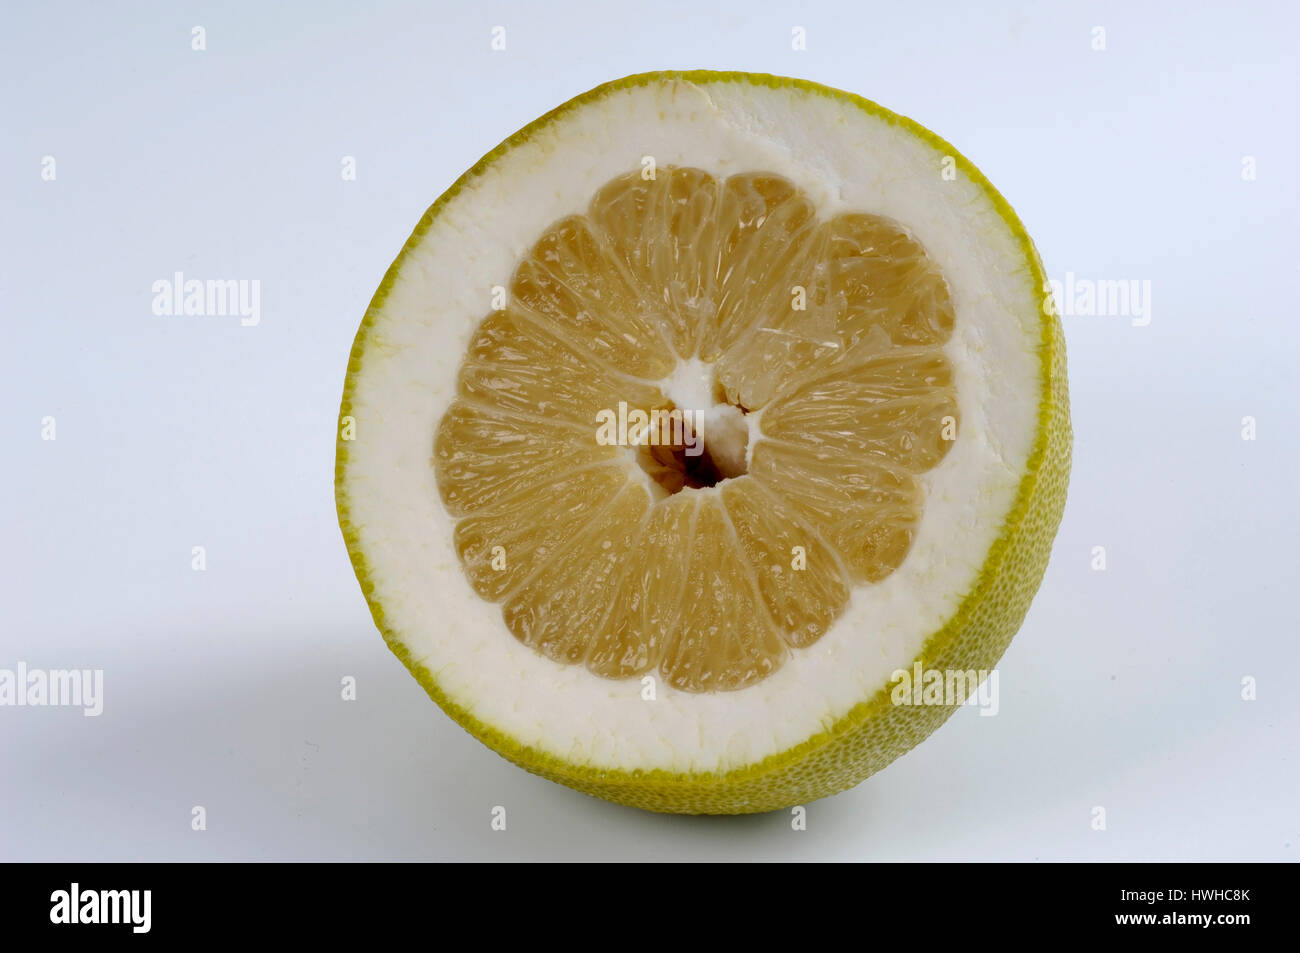 Pomelo, Chinese grapefruit, pommelo, jabong, shaddock, Citrus maxima, grapefruit, gigantic orange, Adam's apple, Stock Photo